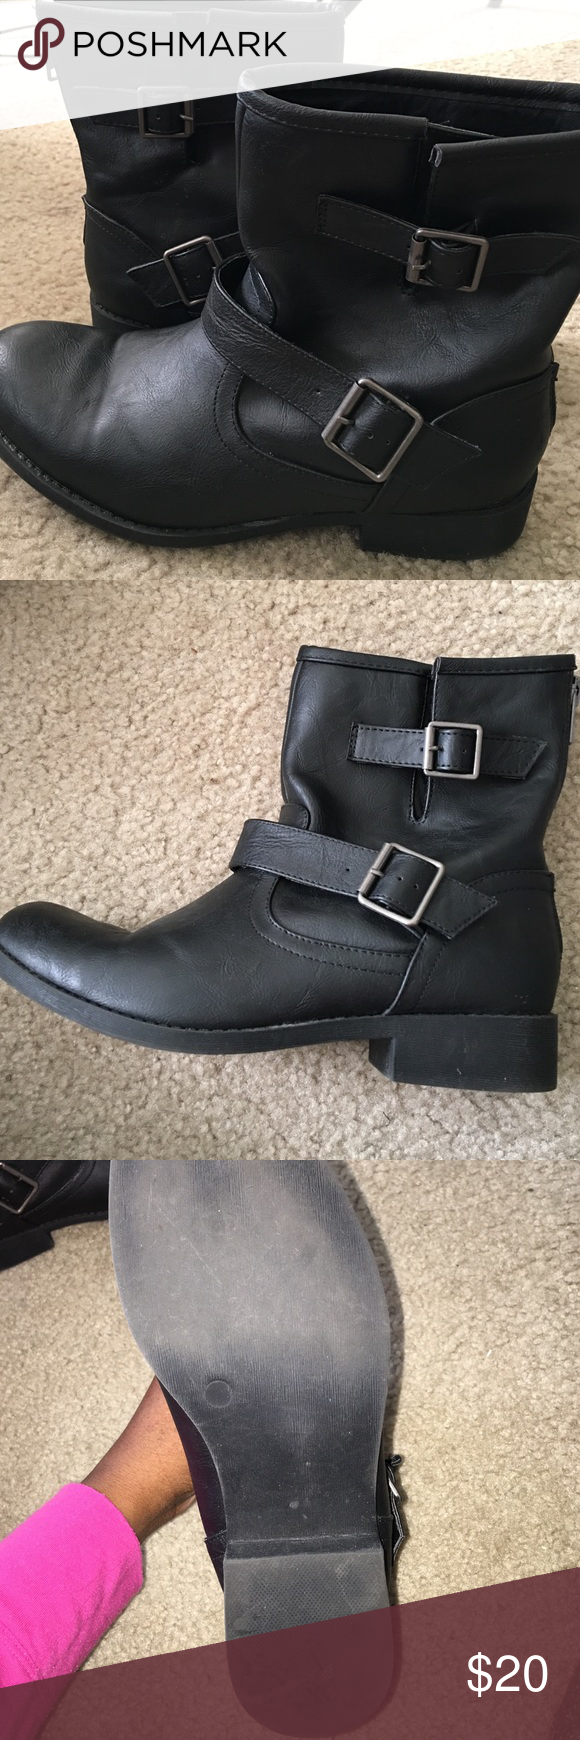 Leather Moto Ankle Boots Purchased from Charlotte Russe. Size 10, gently worn. Charlotte Russe Shoes Combat & Moto Boots